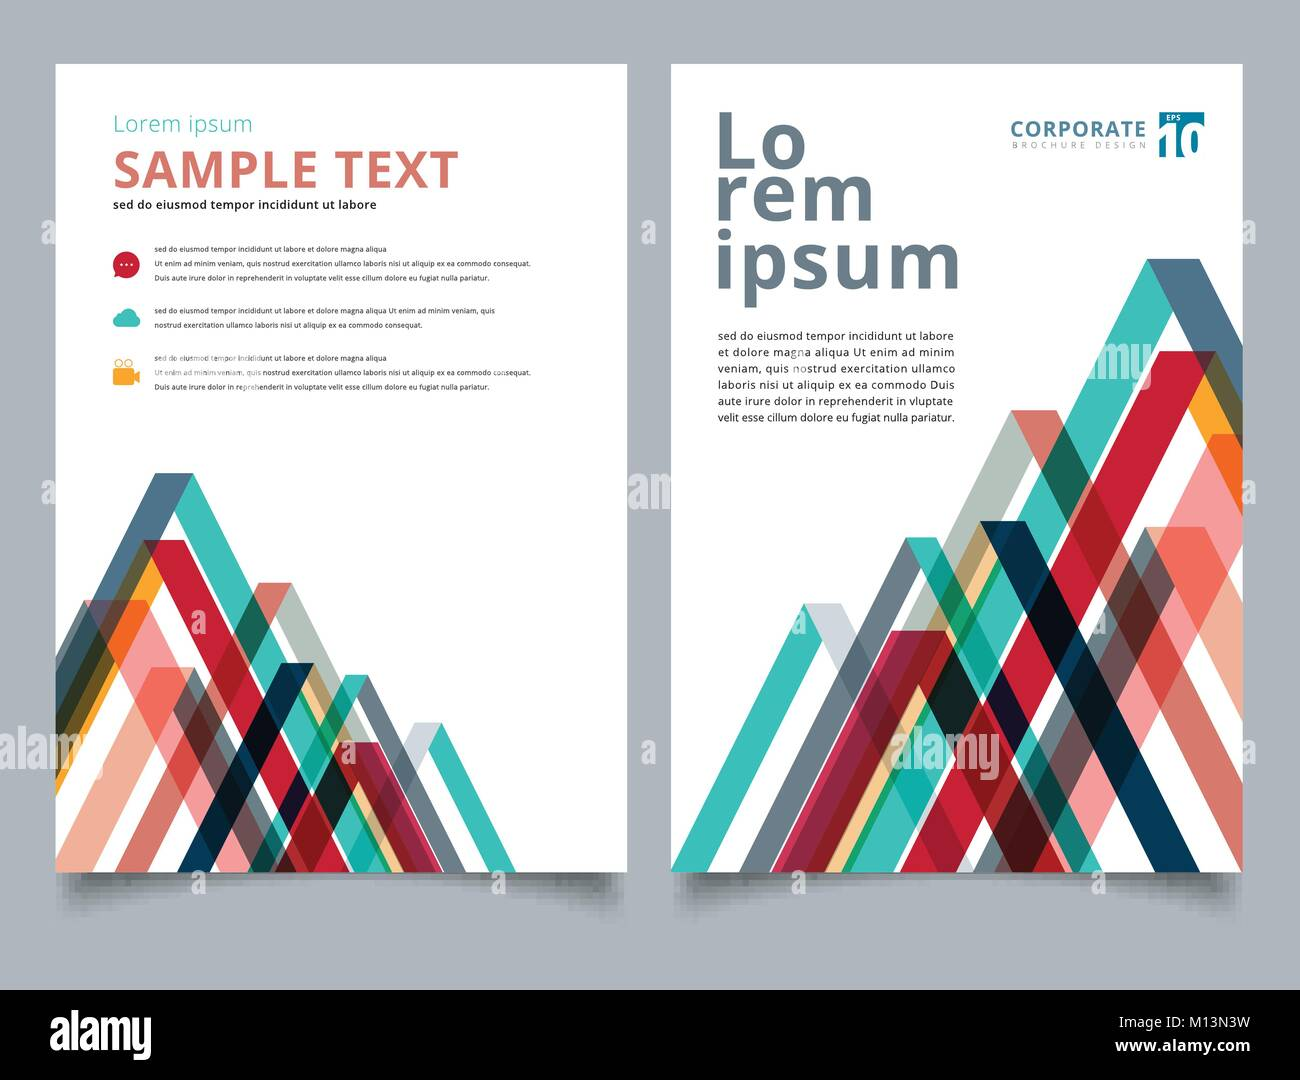 brochure layout design template geometric lines colorful overlap triangle pattern annual report leaflet advertising poster magazine business for